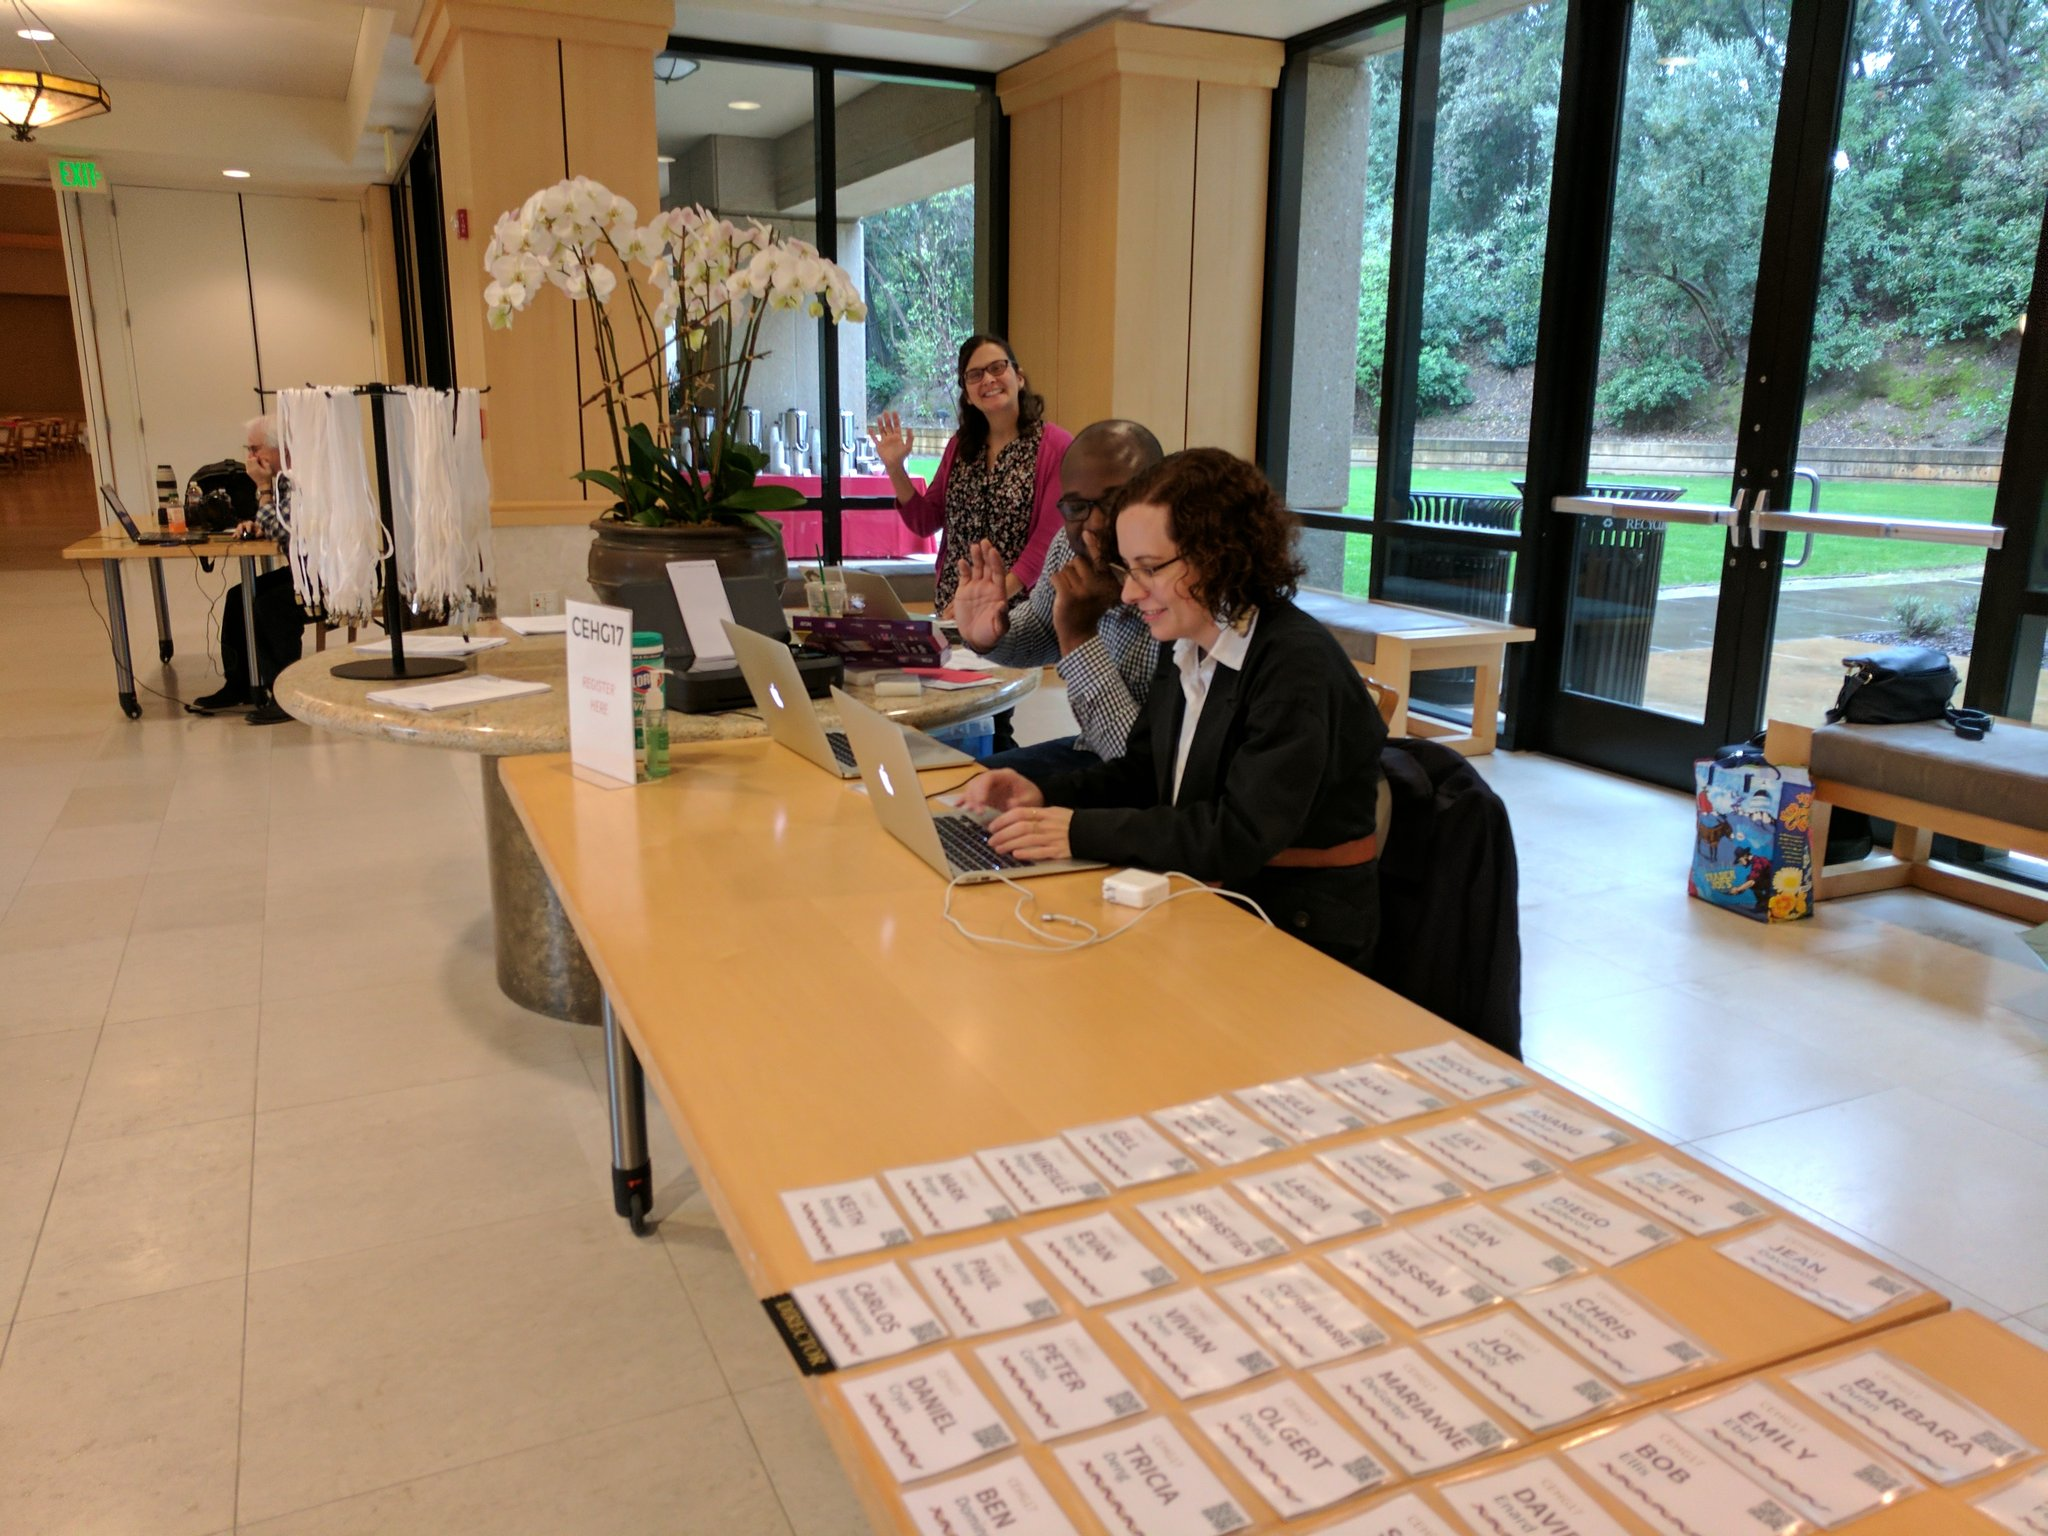 Registration boot ready to roll @StanfordCEHG #CEHG17 https://t.co/2bZ0Vd6EIY